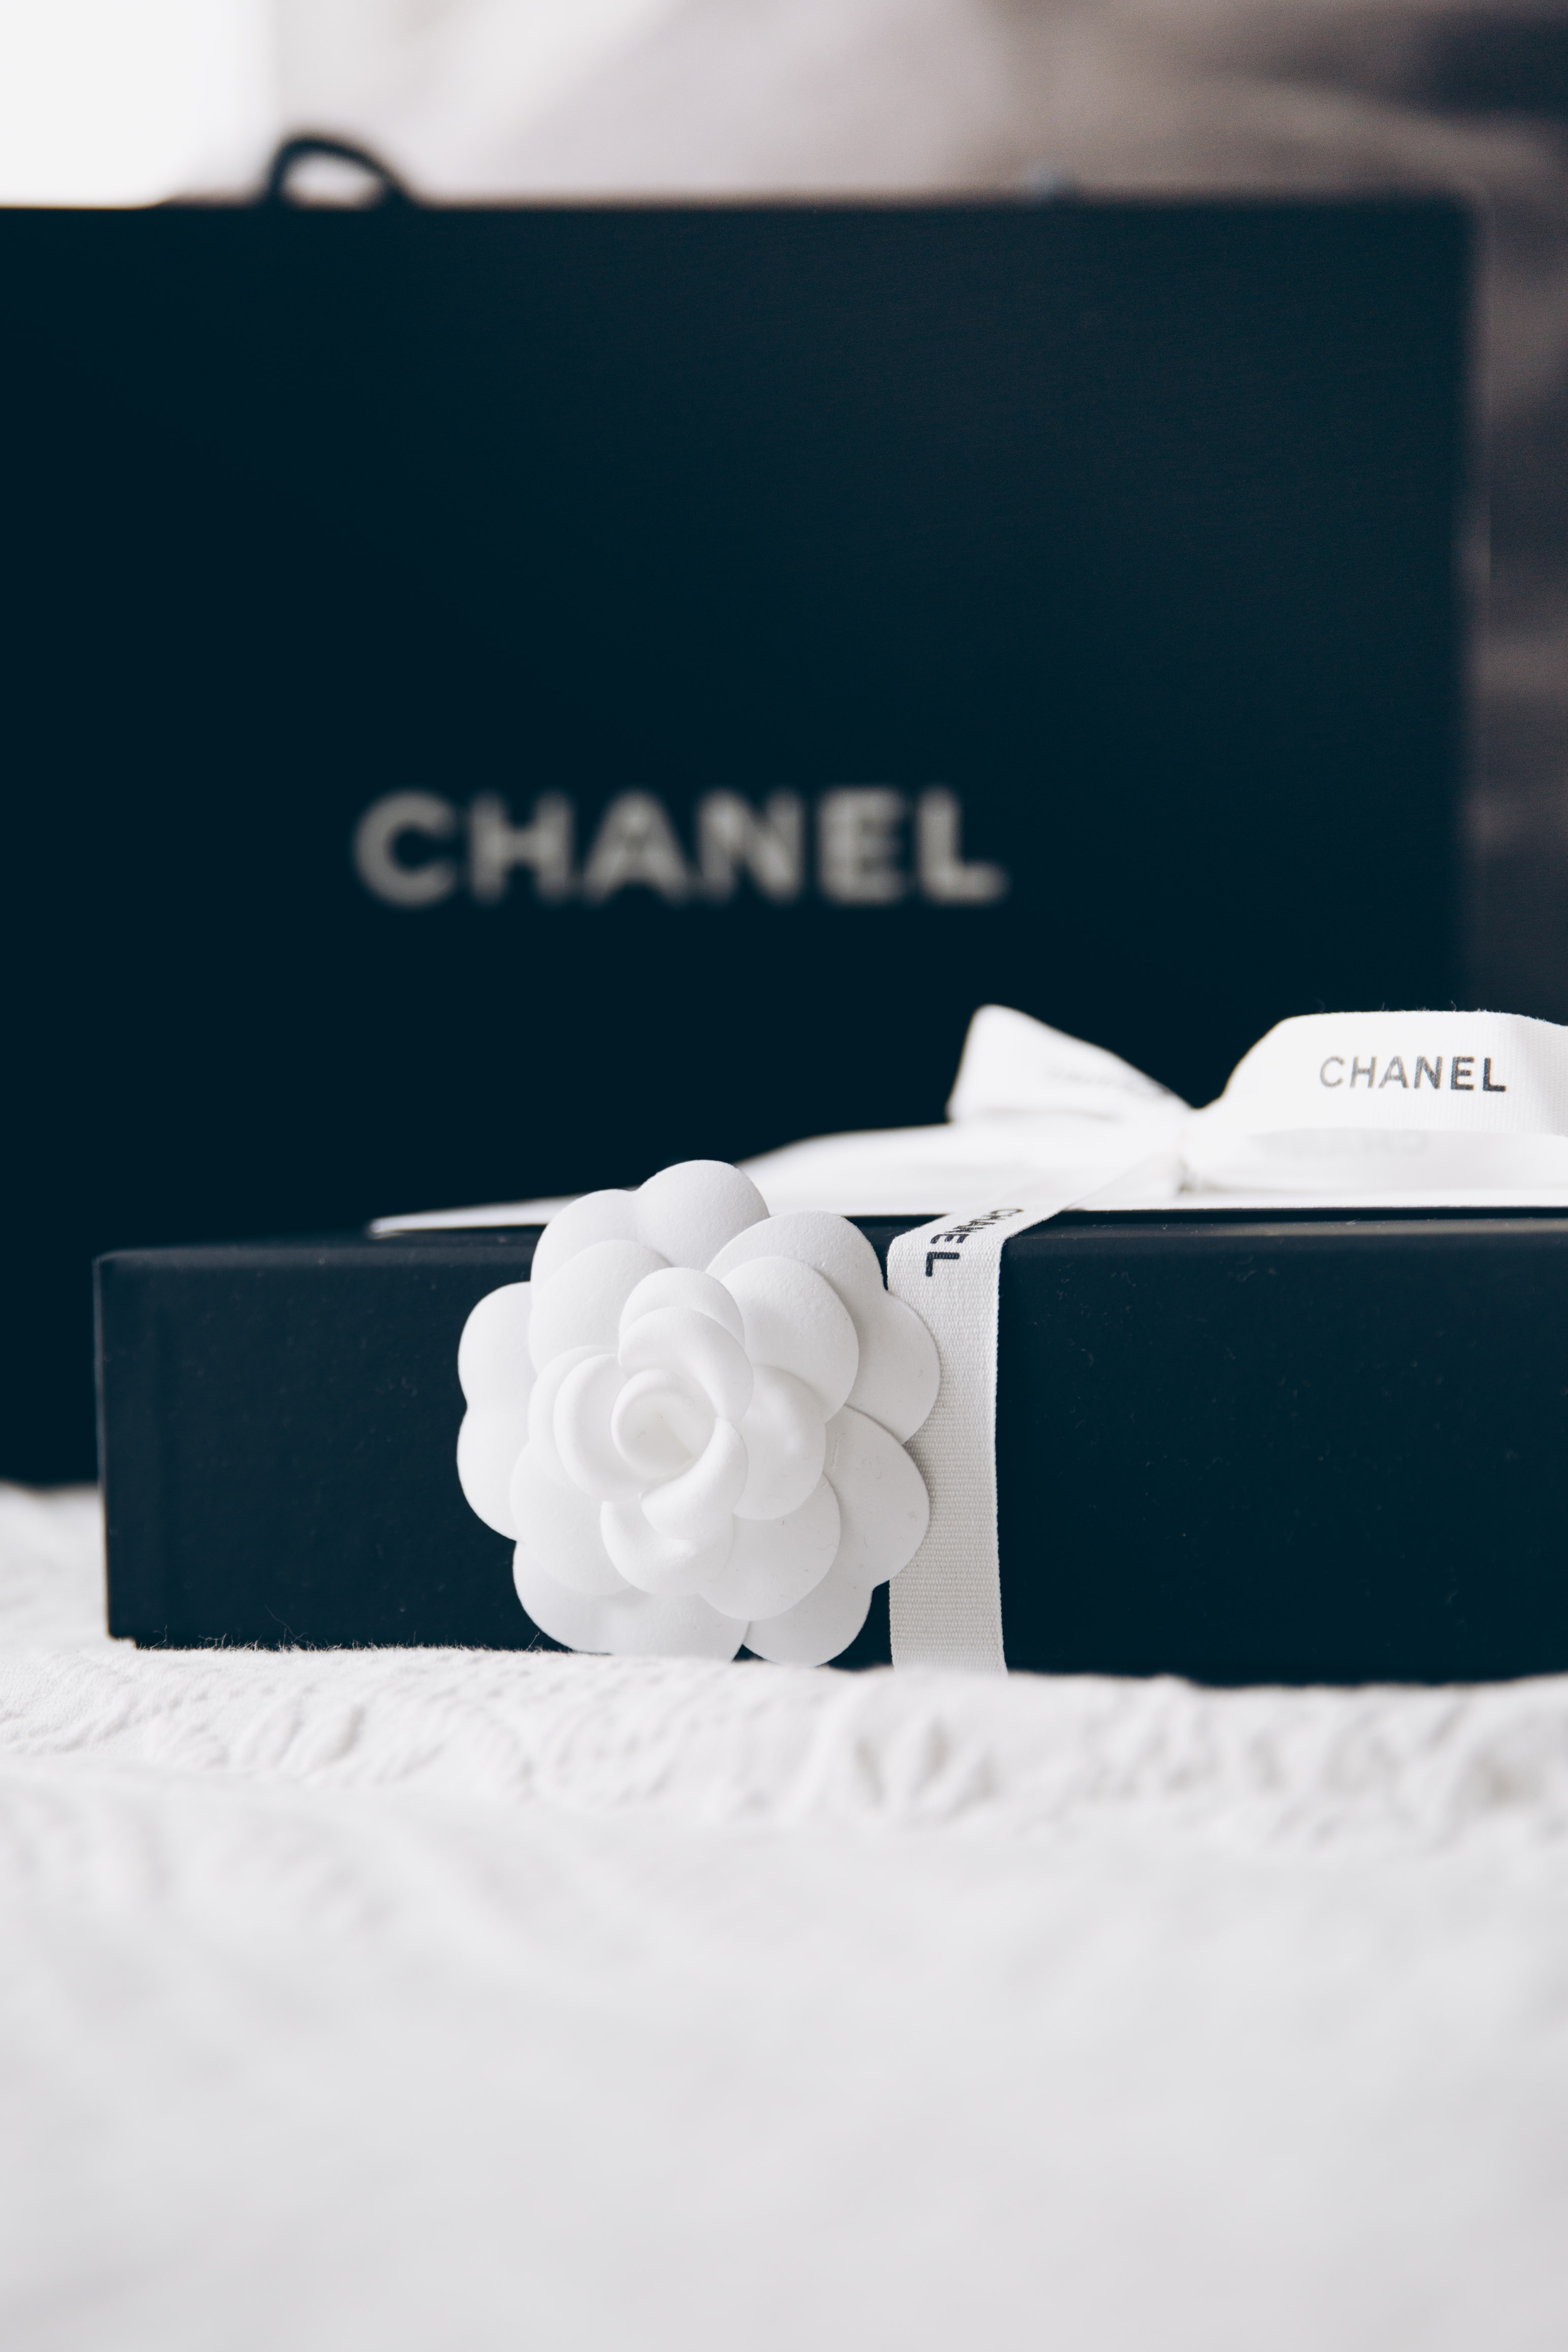 ded68491a3be Review  Chanel Wallet on Chain WOC - You rock my life